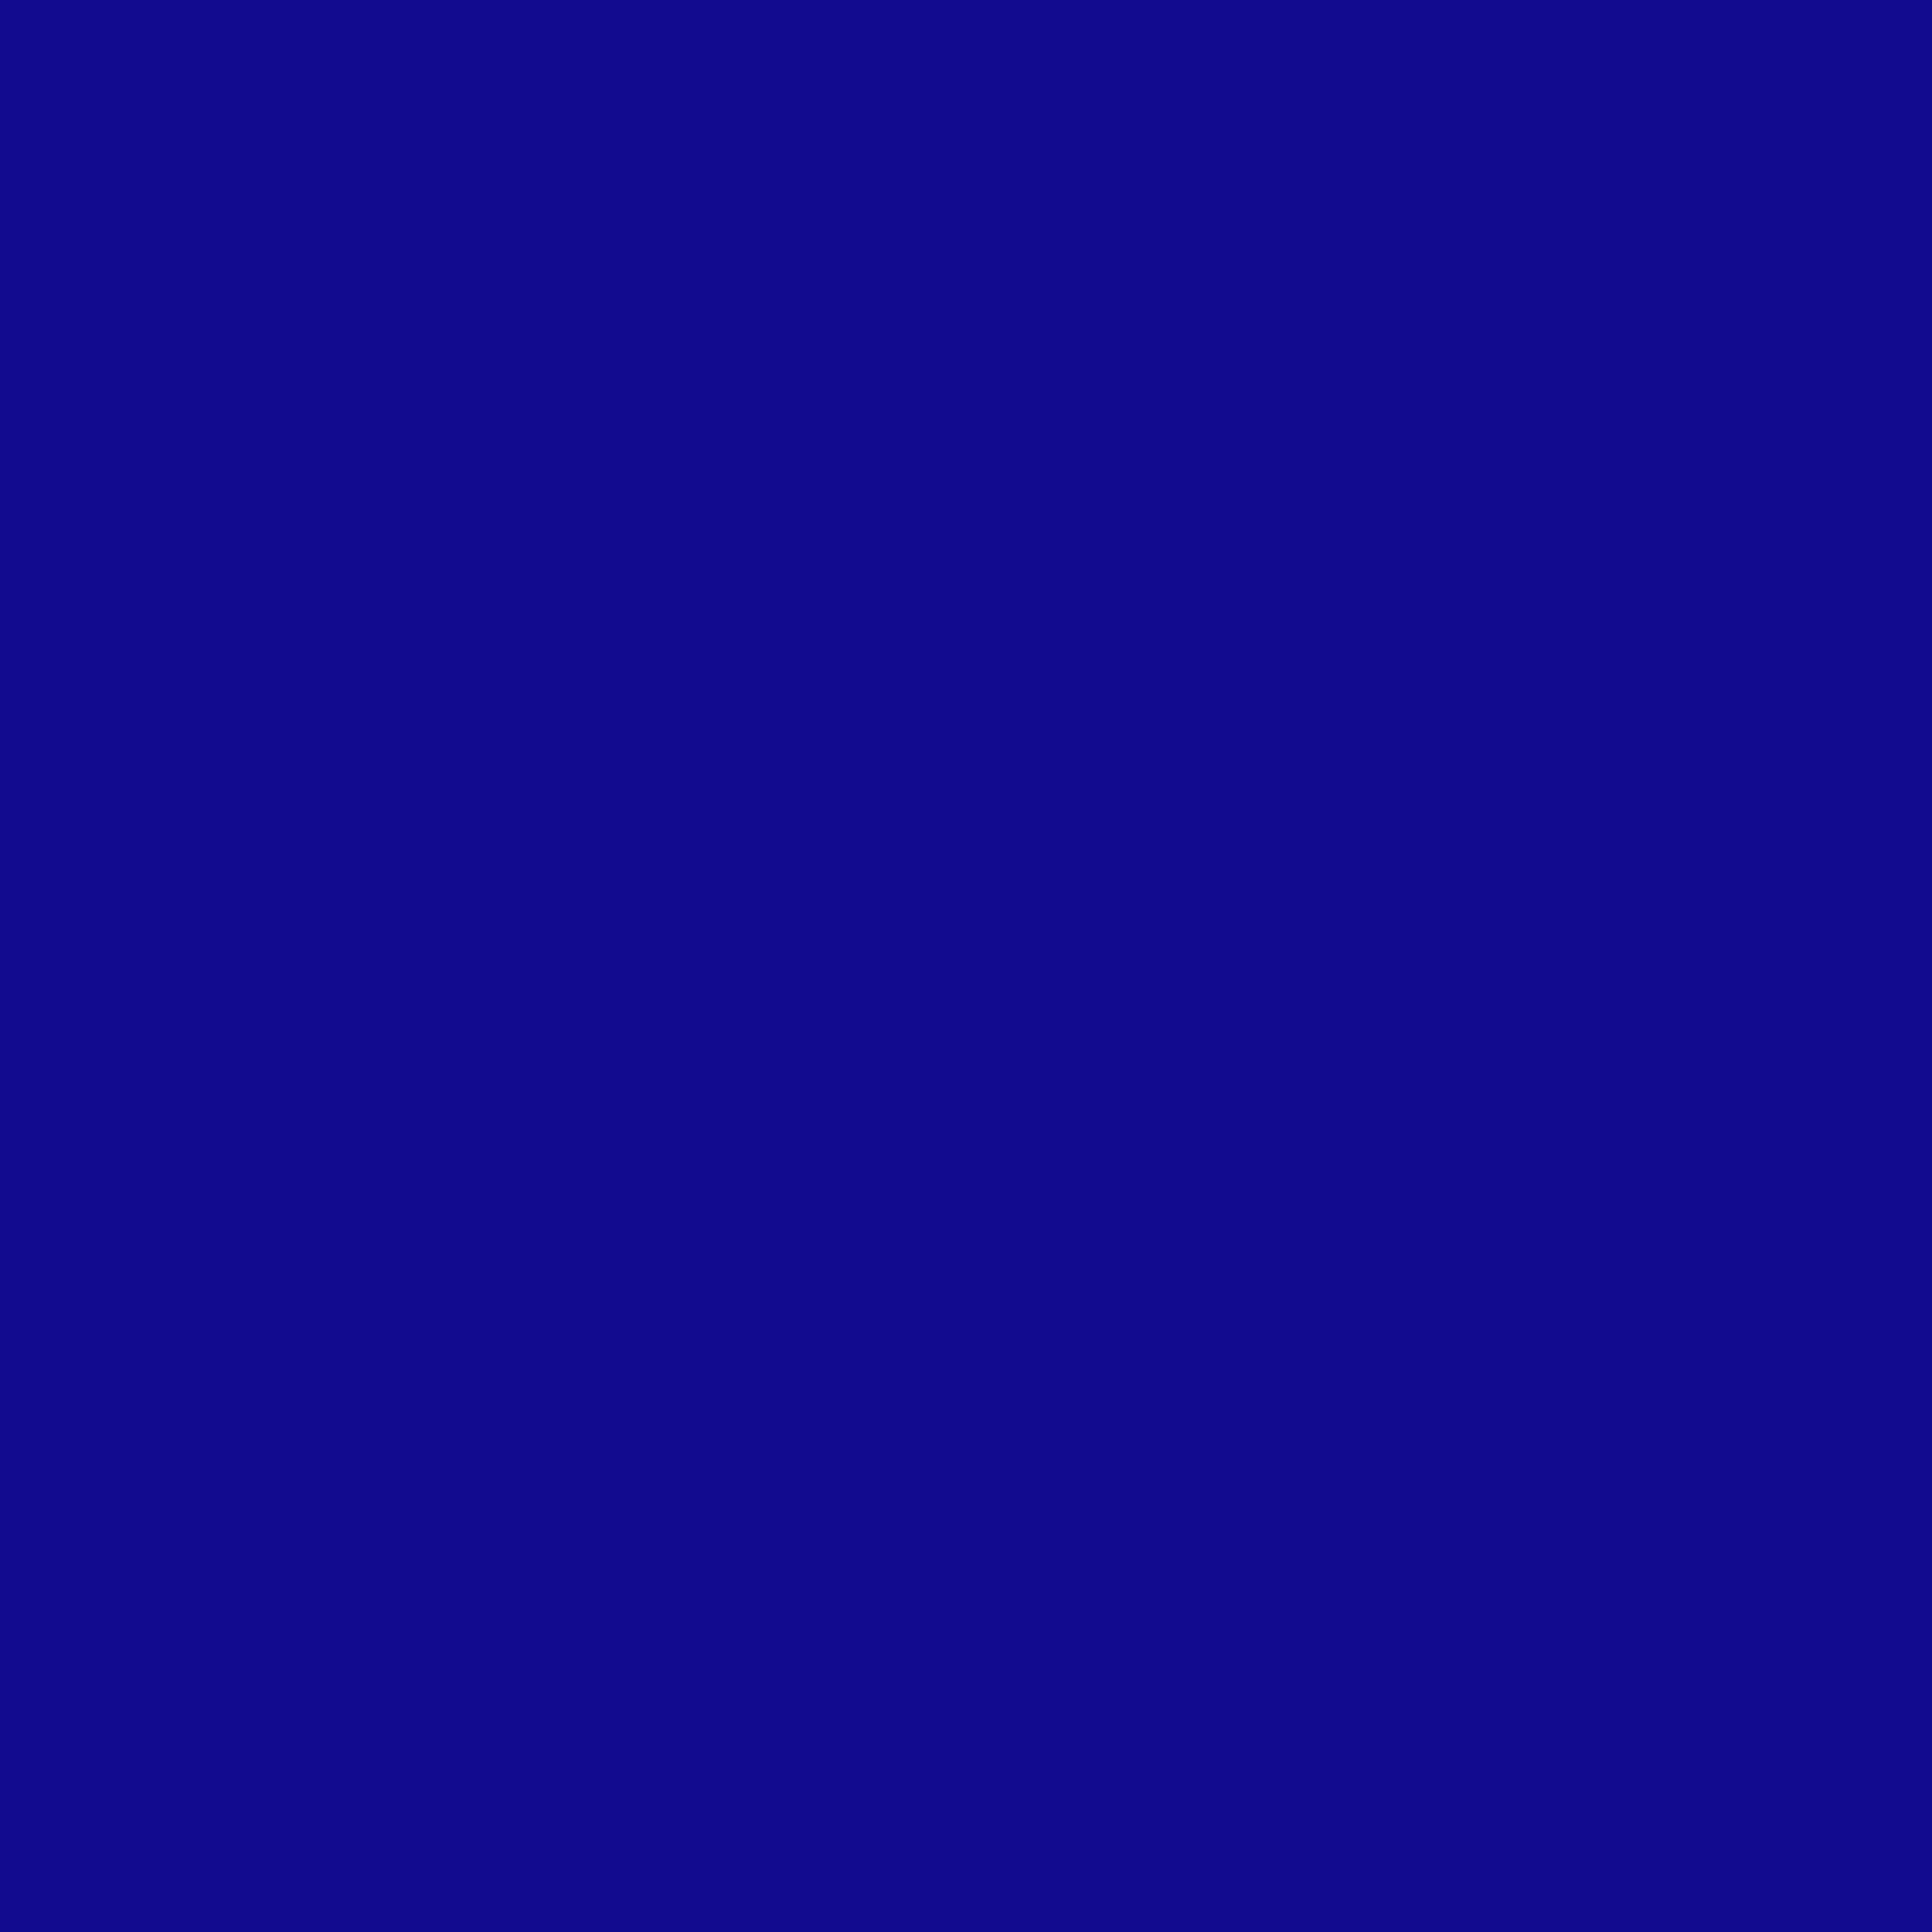 2048x2048 Ultramarine Solid Color Background